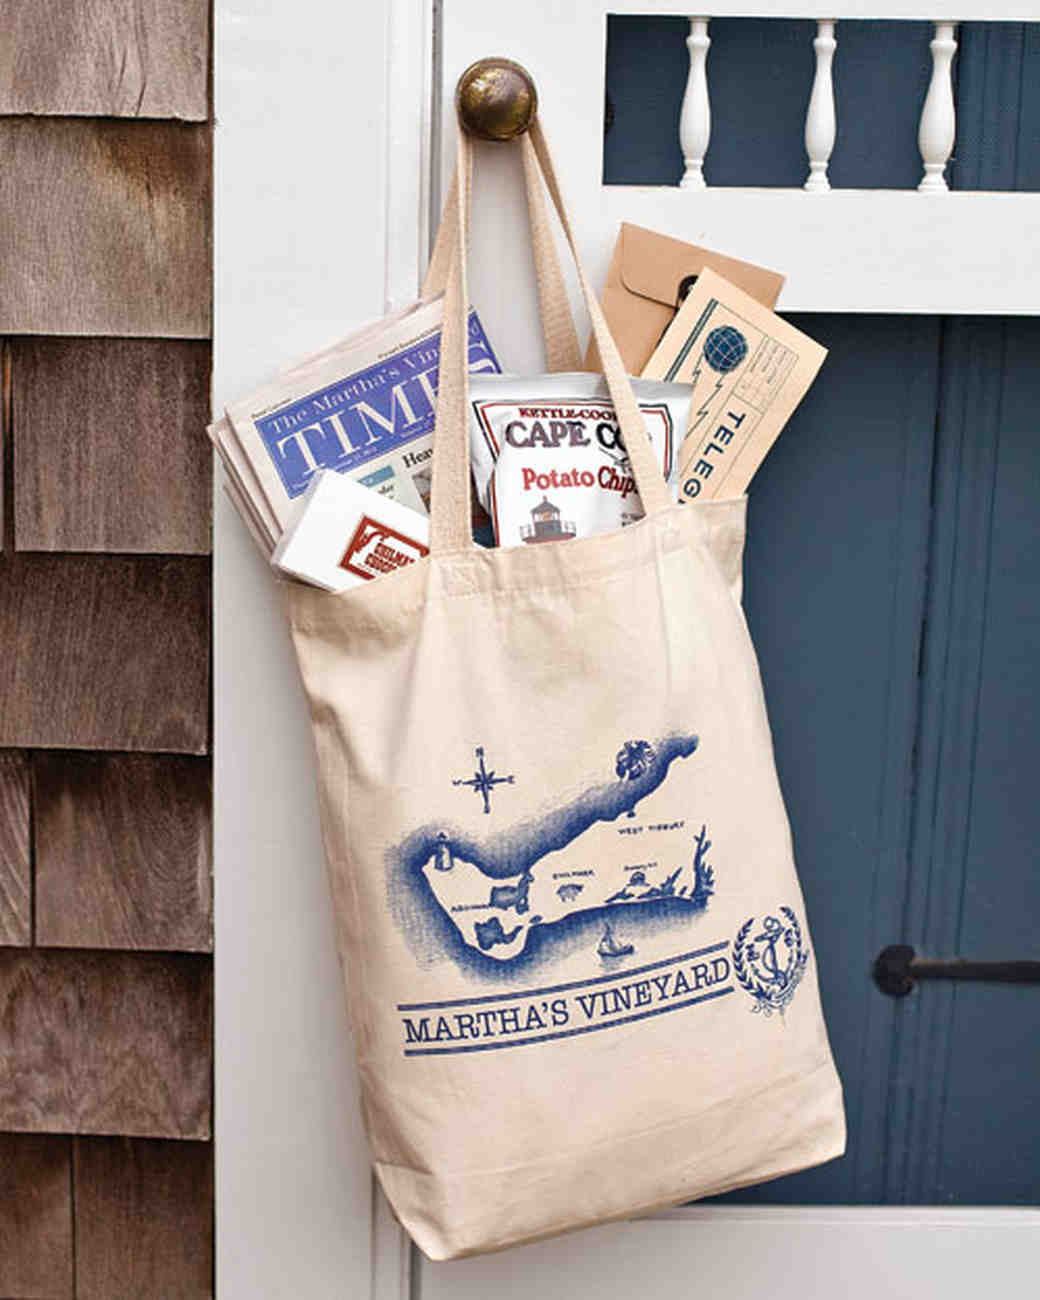 martha's vineyard welcome bag